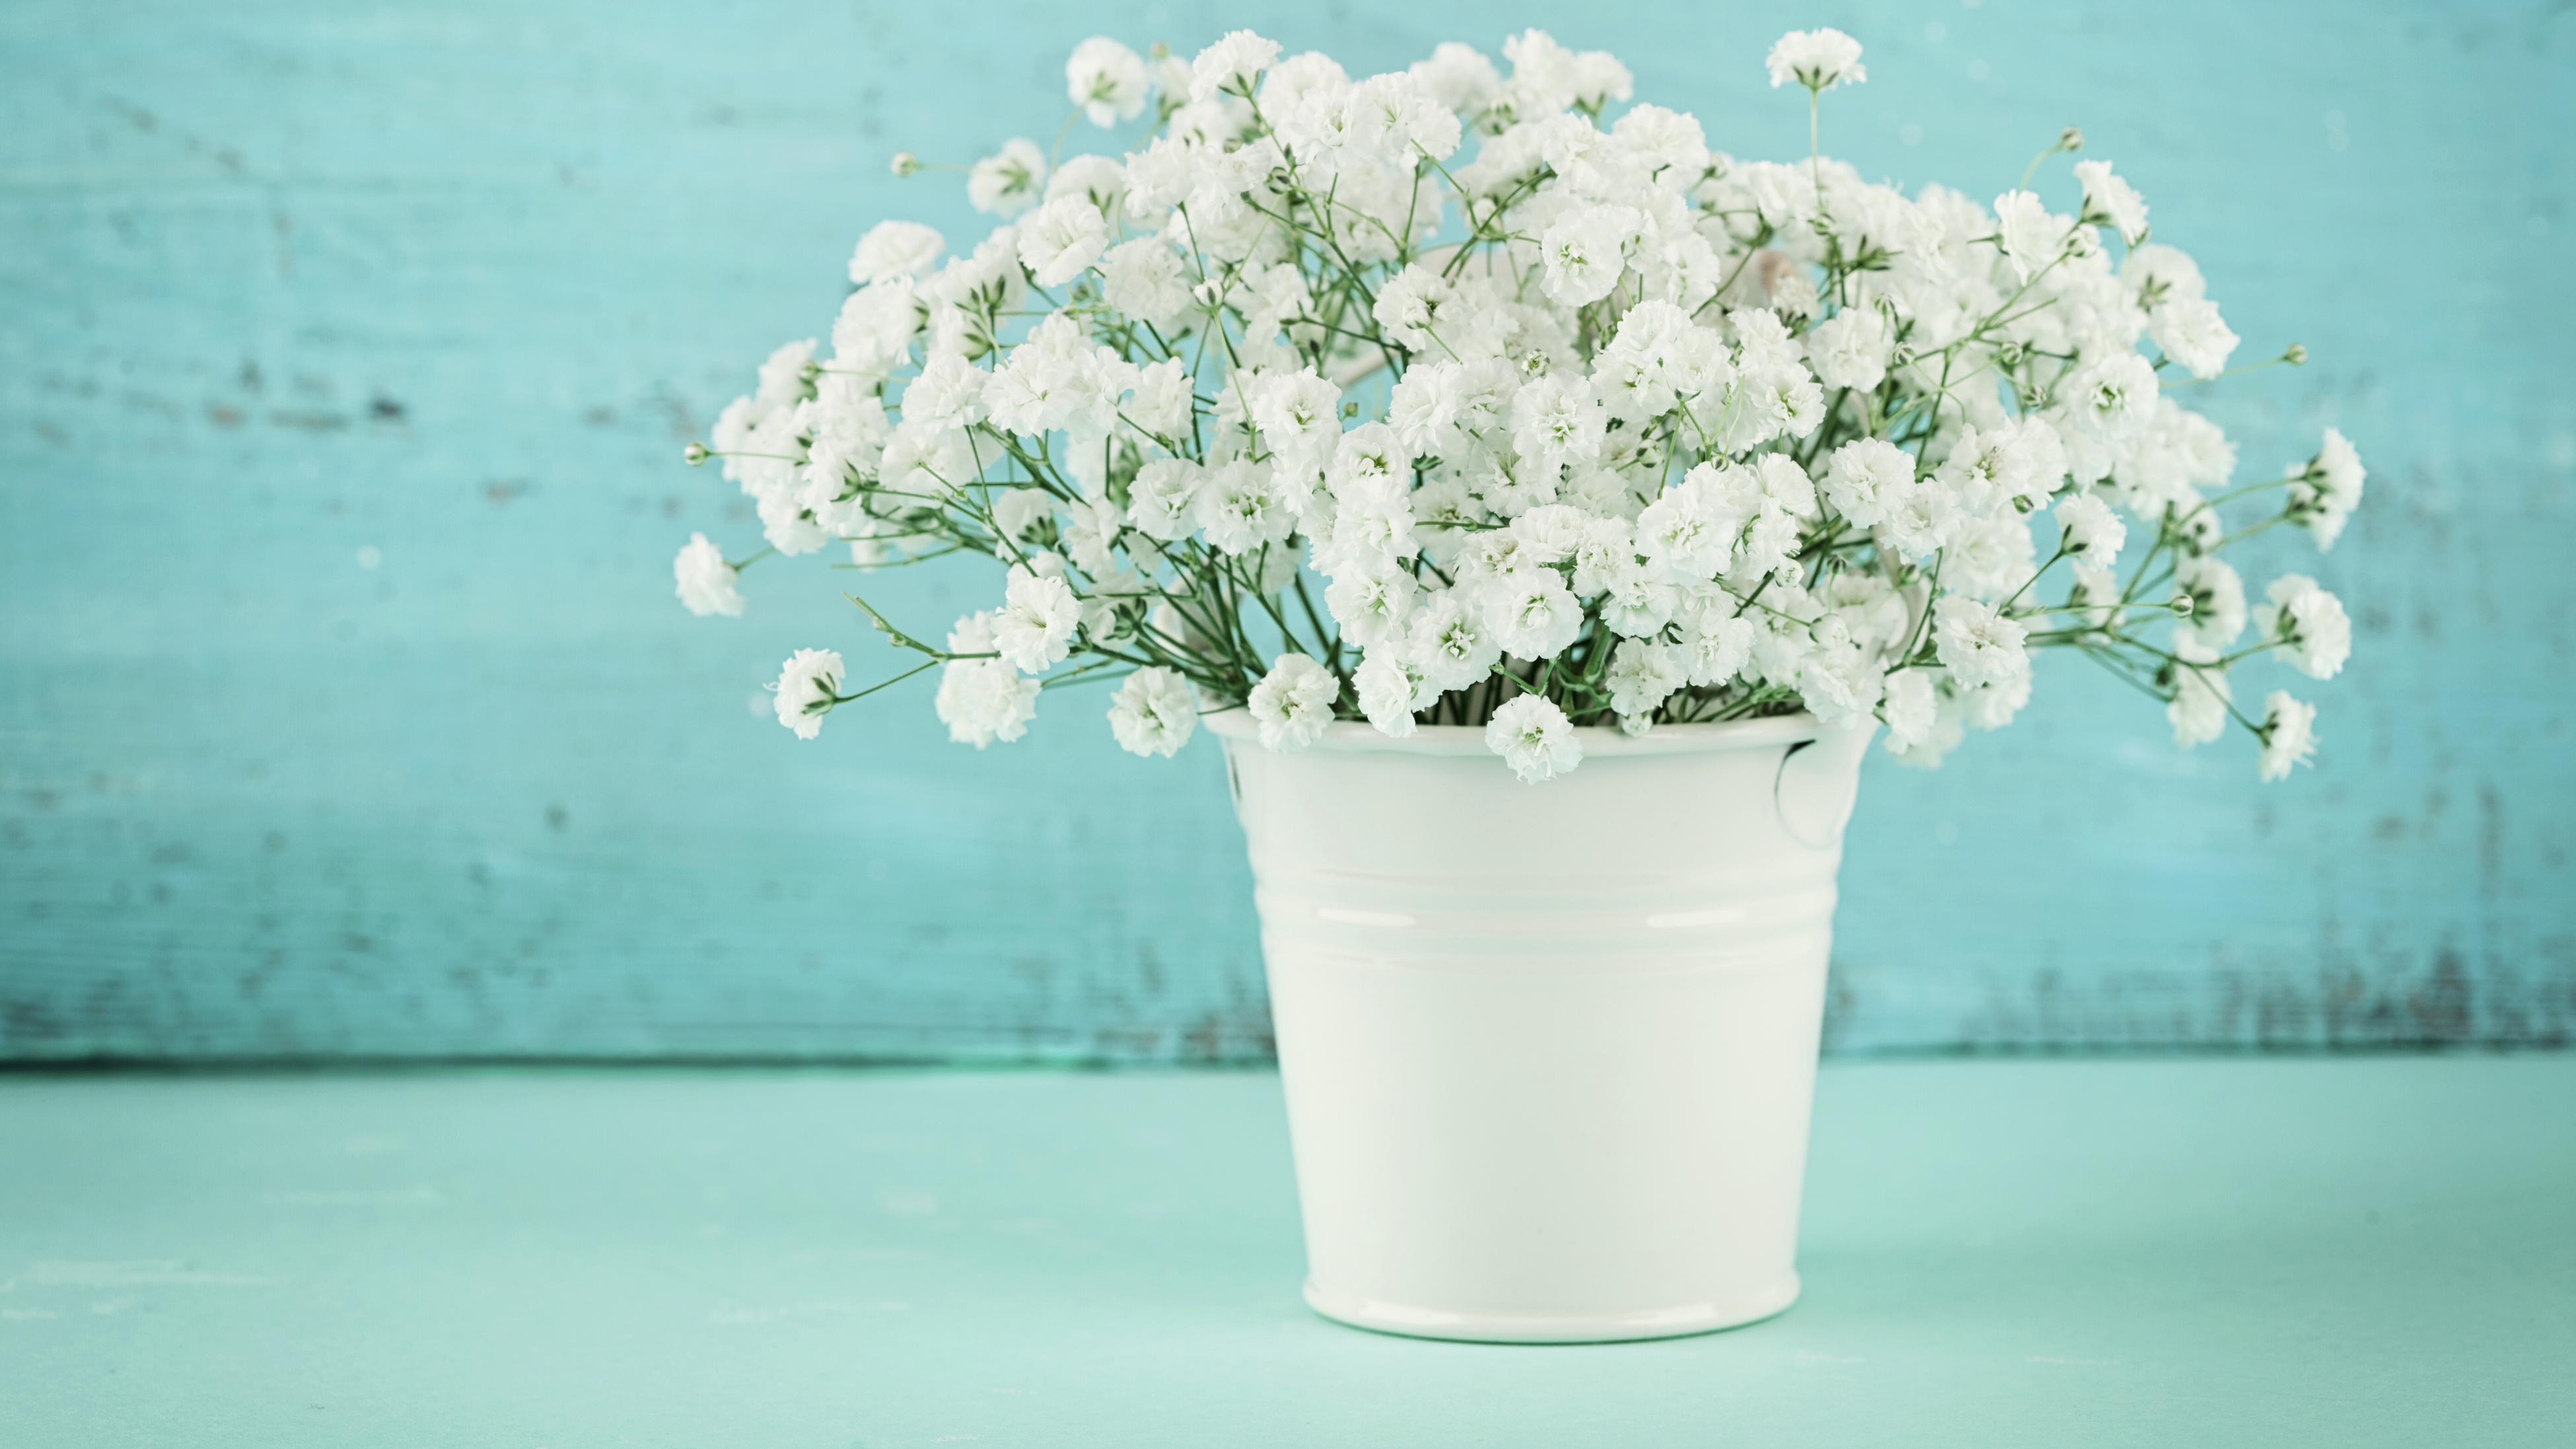 Close-up of white baby's breath flowers in a white pot